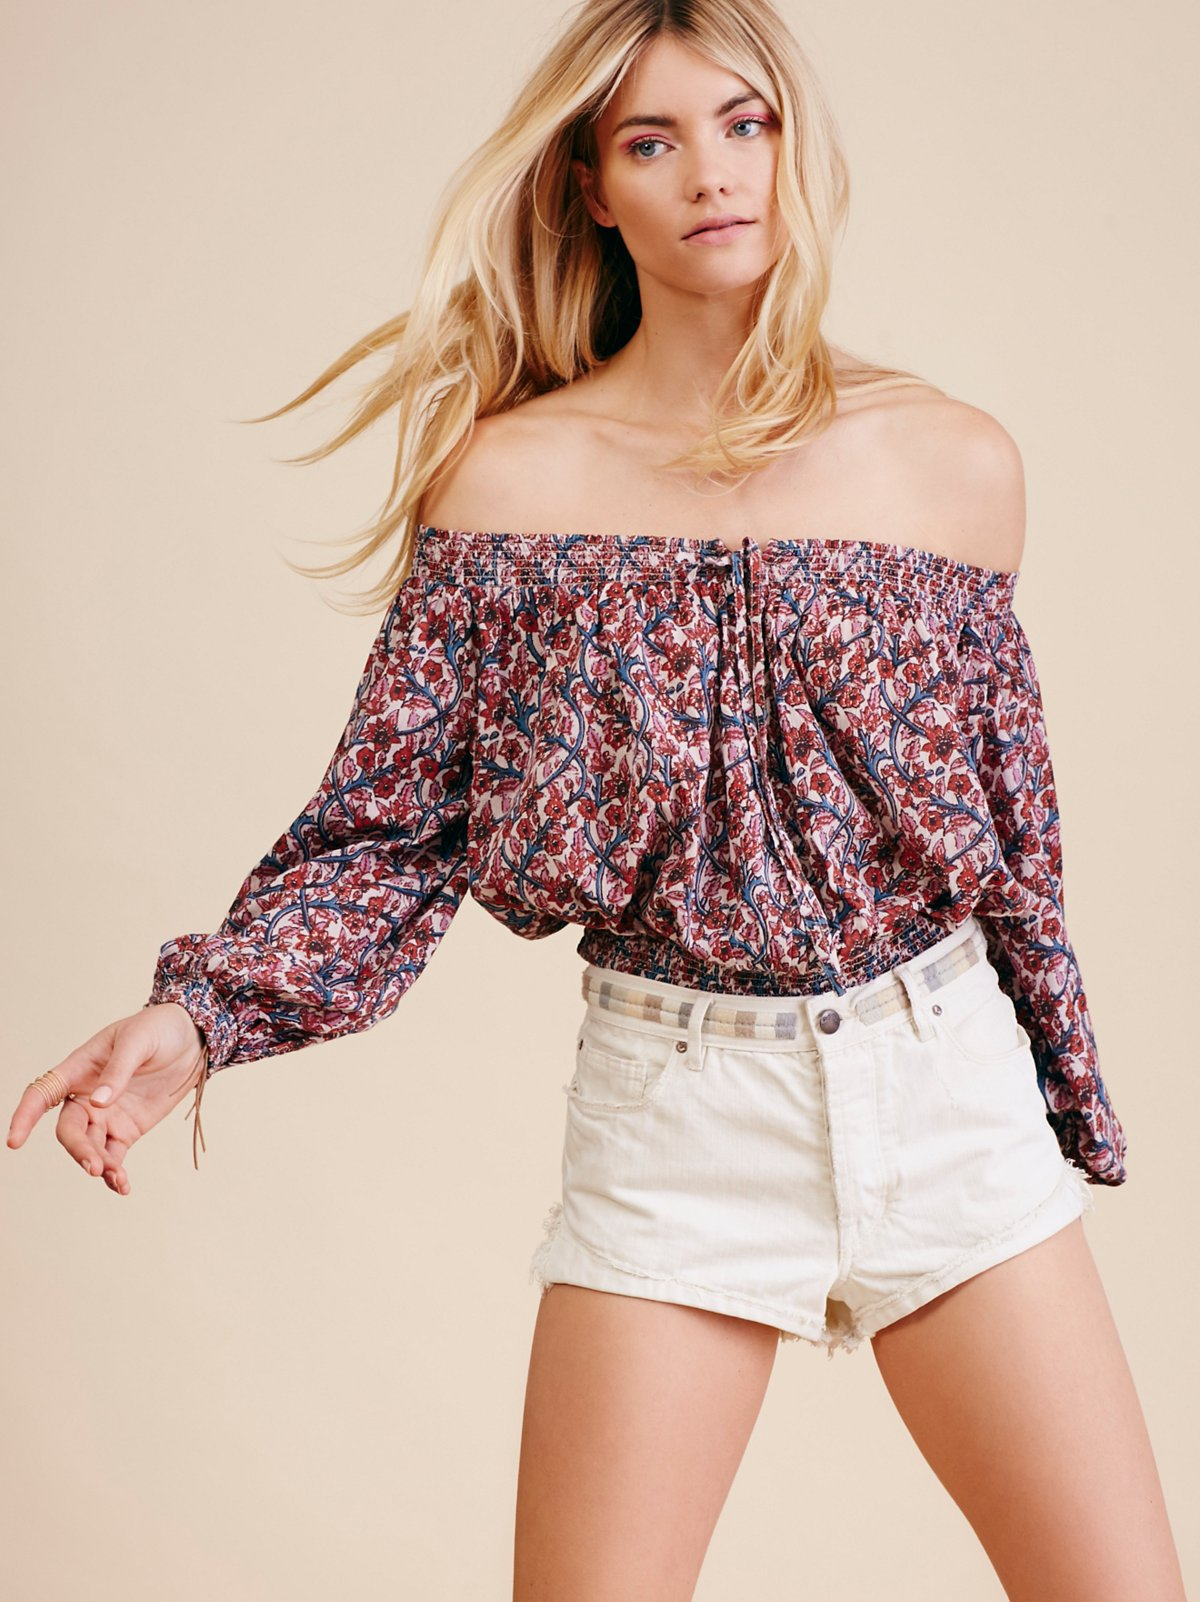 Anything Goes Off the Shoulder Top